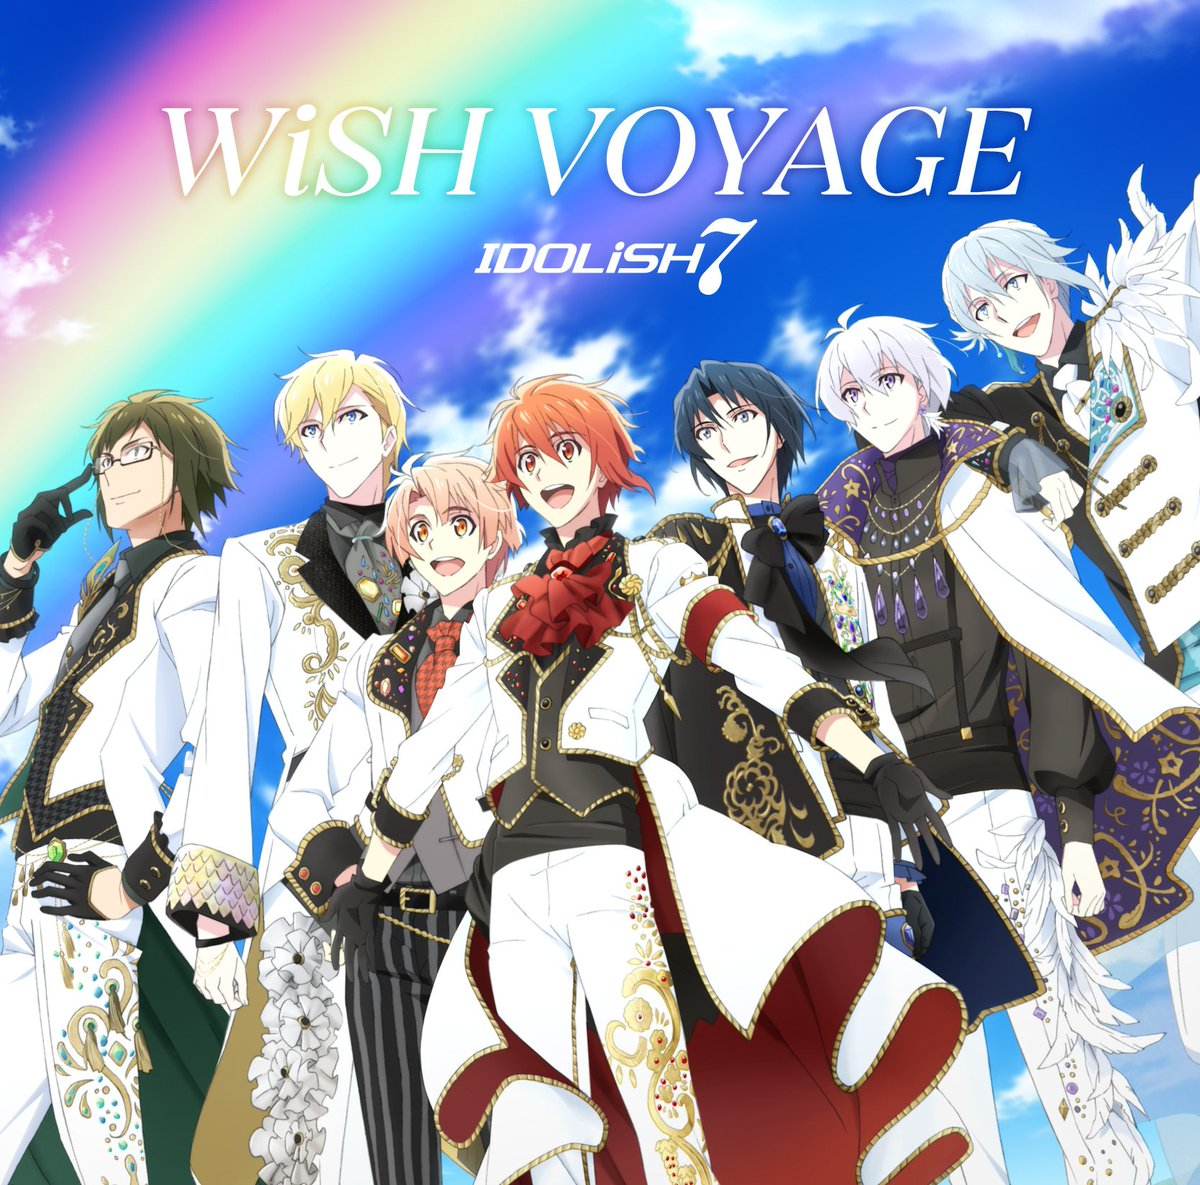 [TOP1] IDOLiSH7 – WiSH VOYAGE